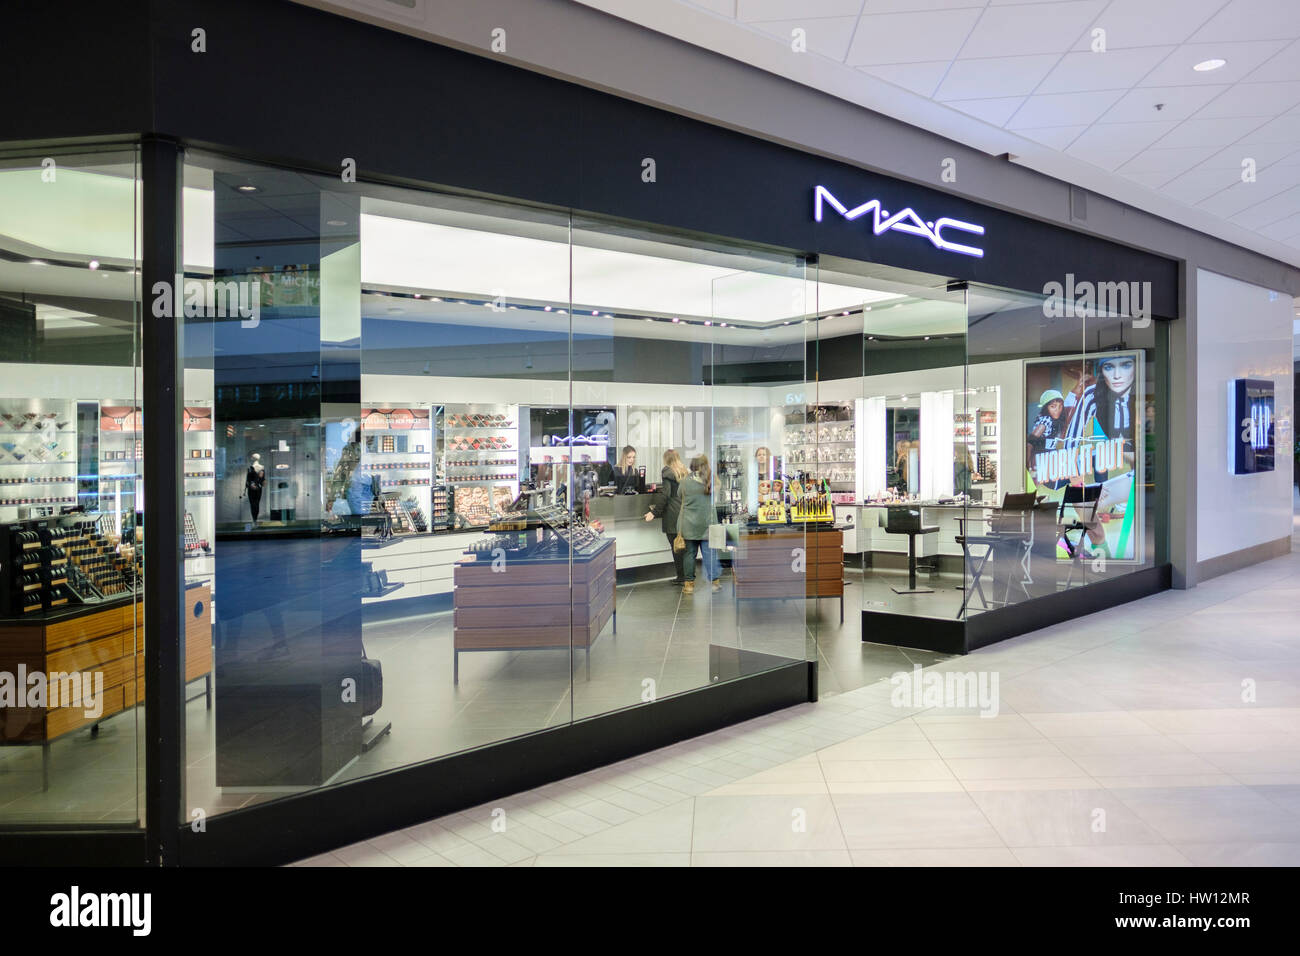 mac m a c cosmetics store front shop front entrance. Black Bedroom Furniture Sets. Home Design Ideas